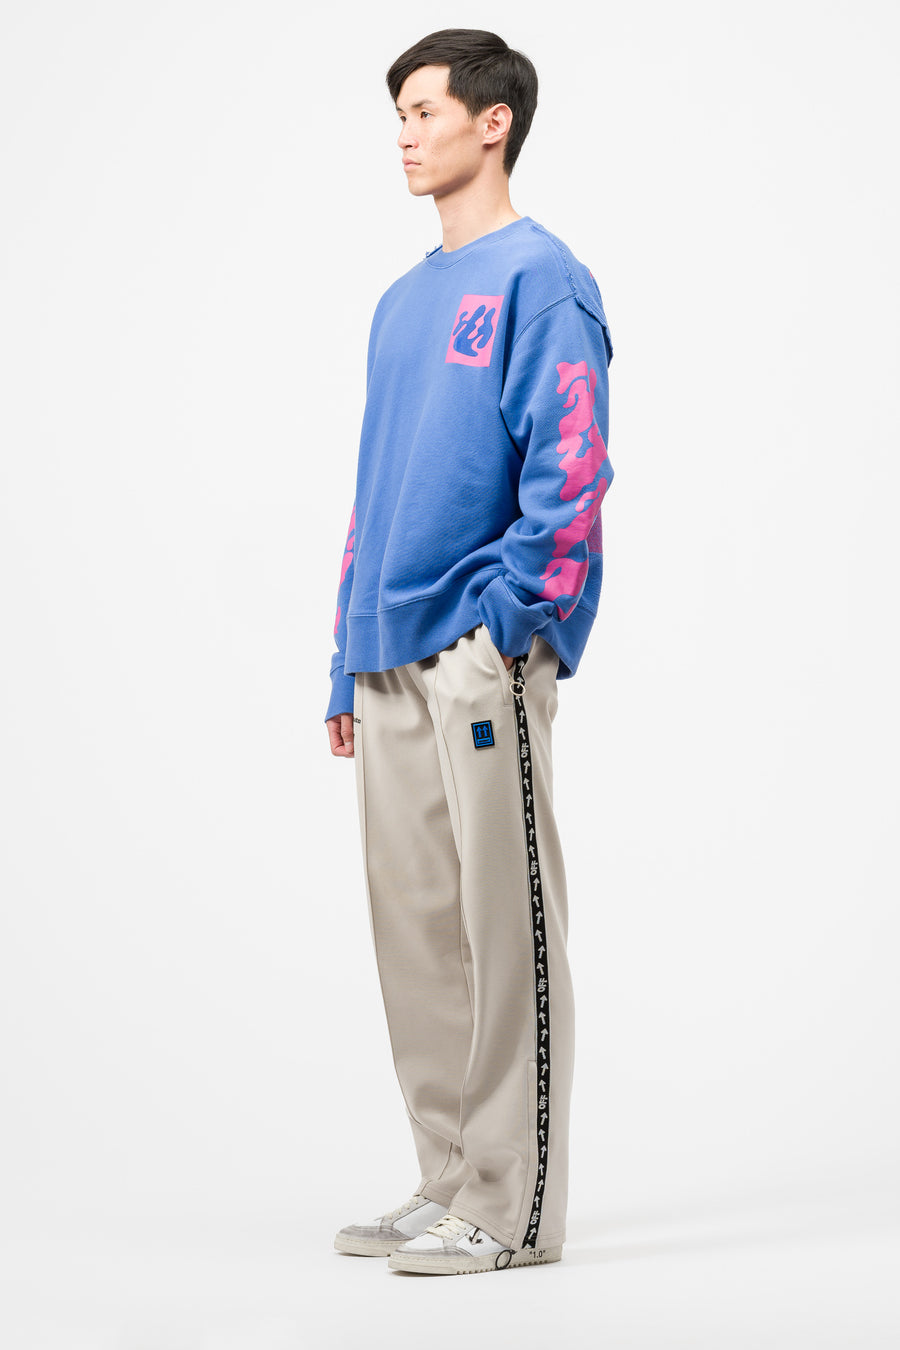 Off-White Shape of Incompiuto Crewneck in Blue Fuchsia - Notre